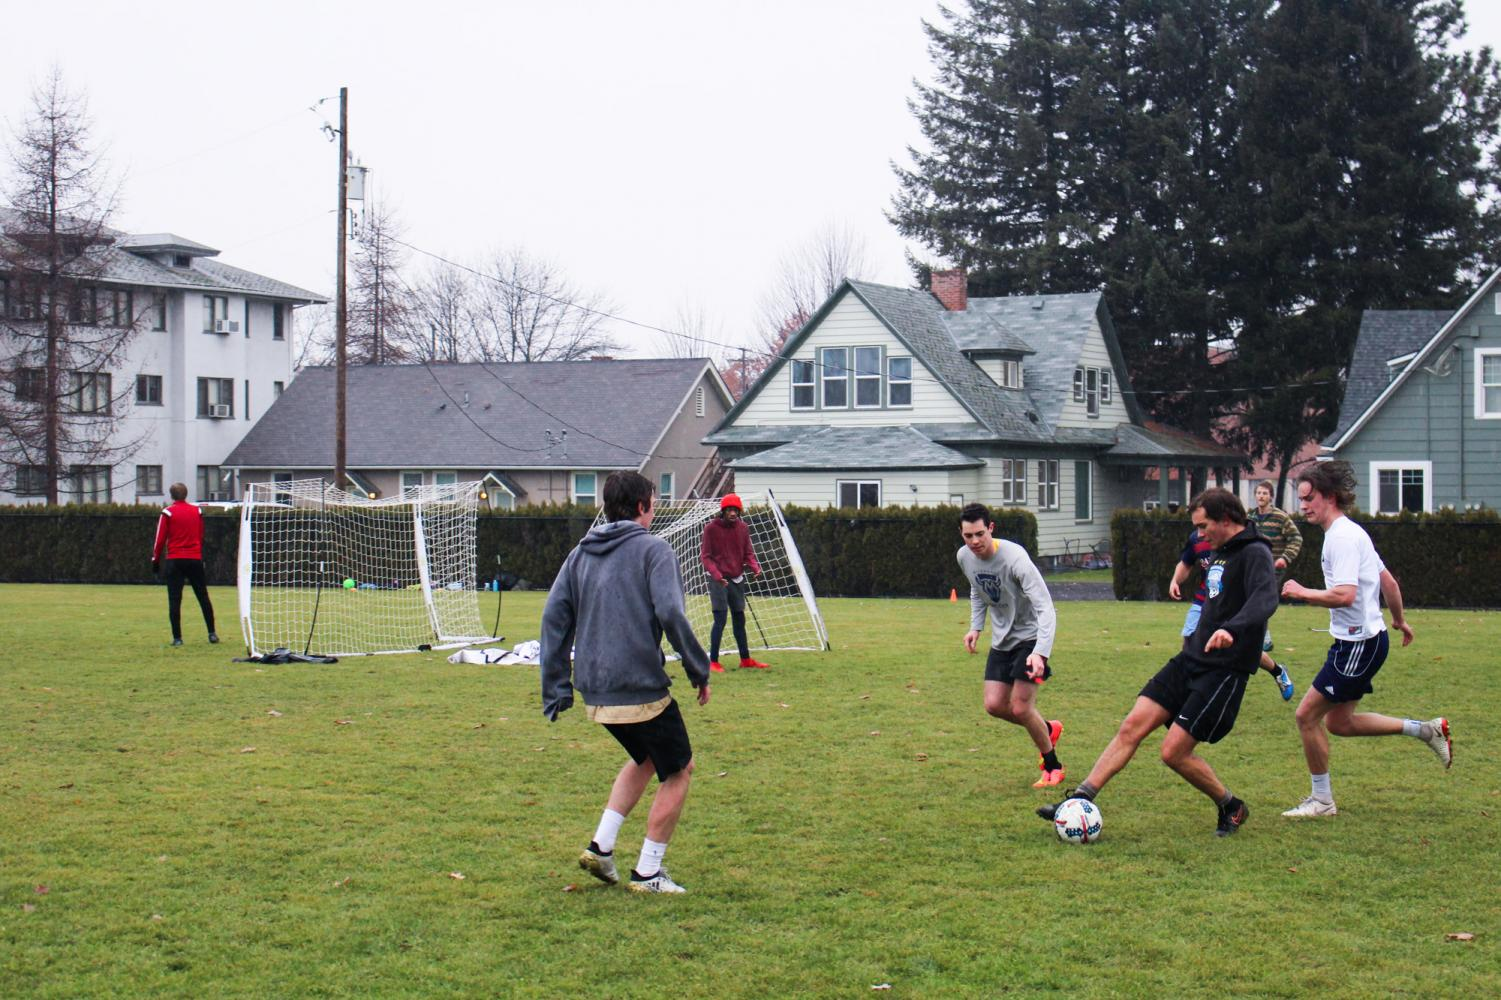 Students enjoy an afternoon game of IM soccer on Harper Joy Field.